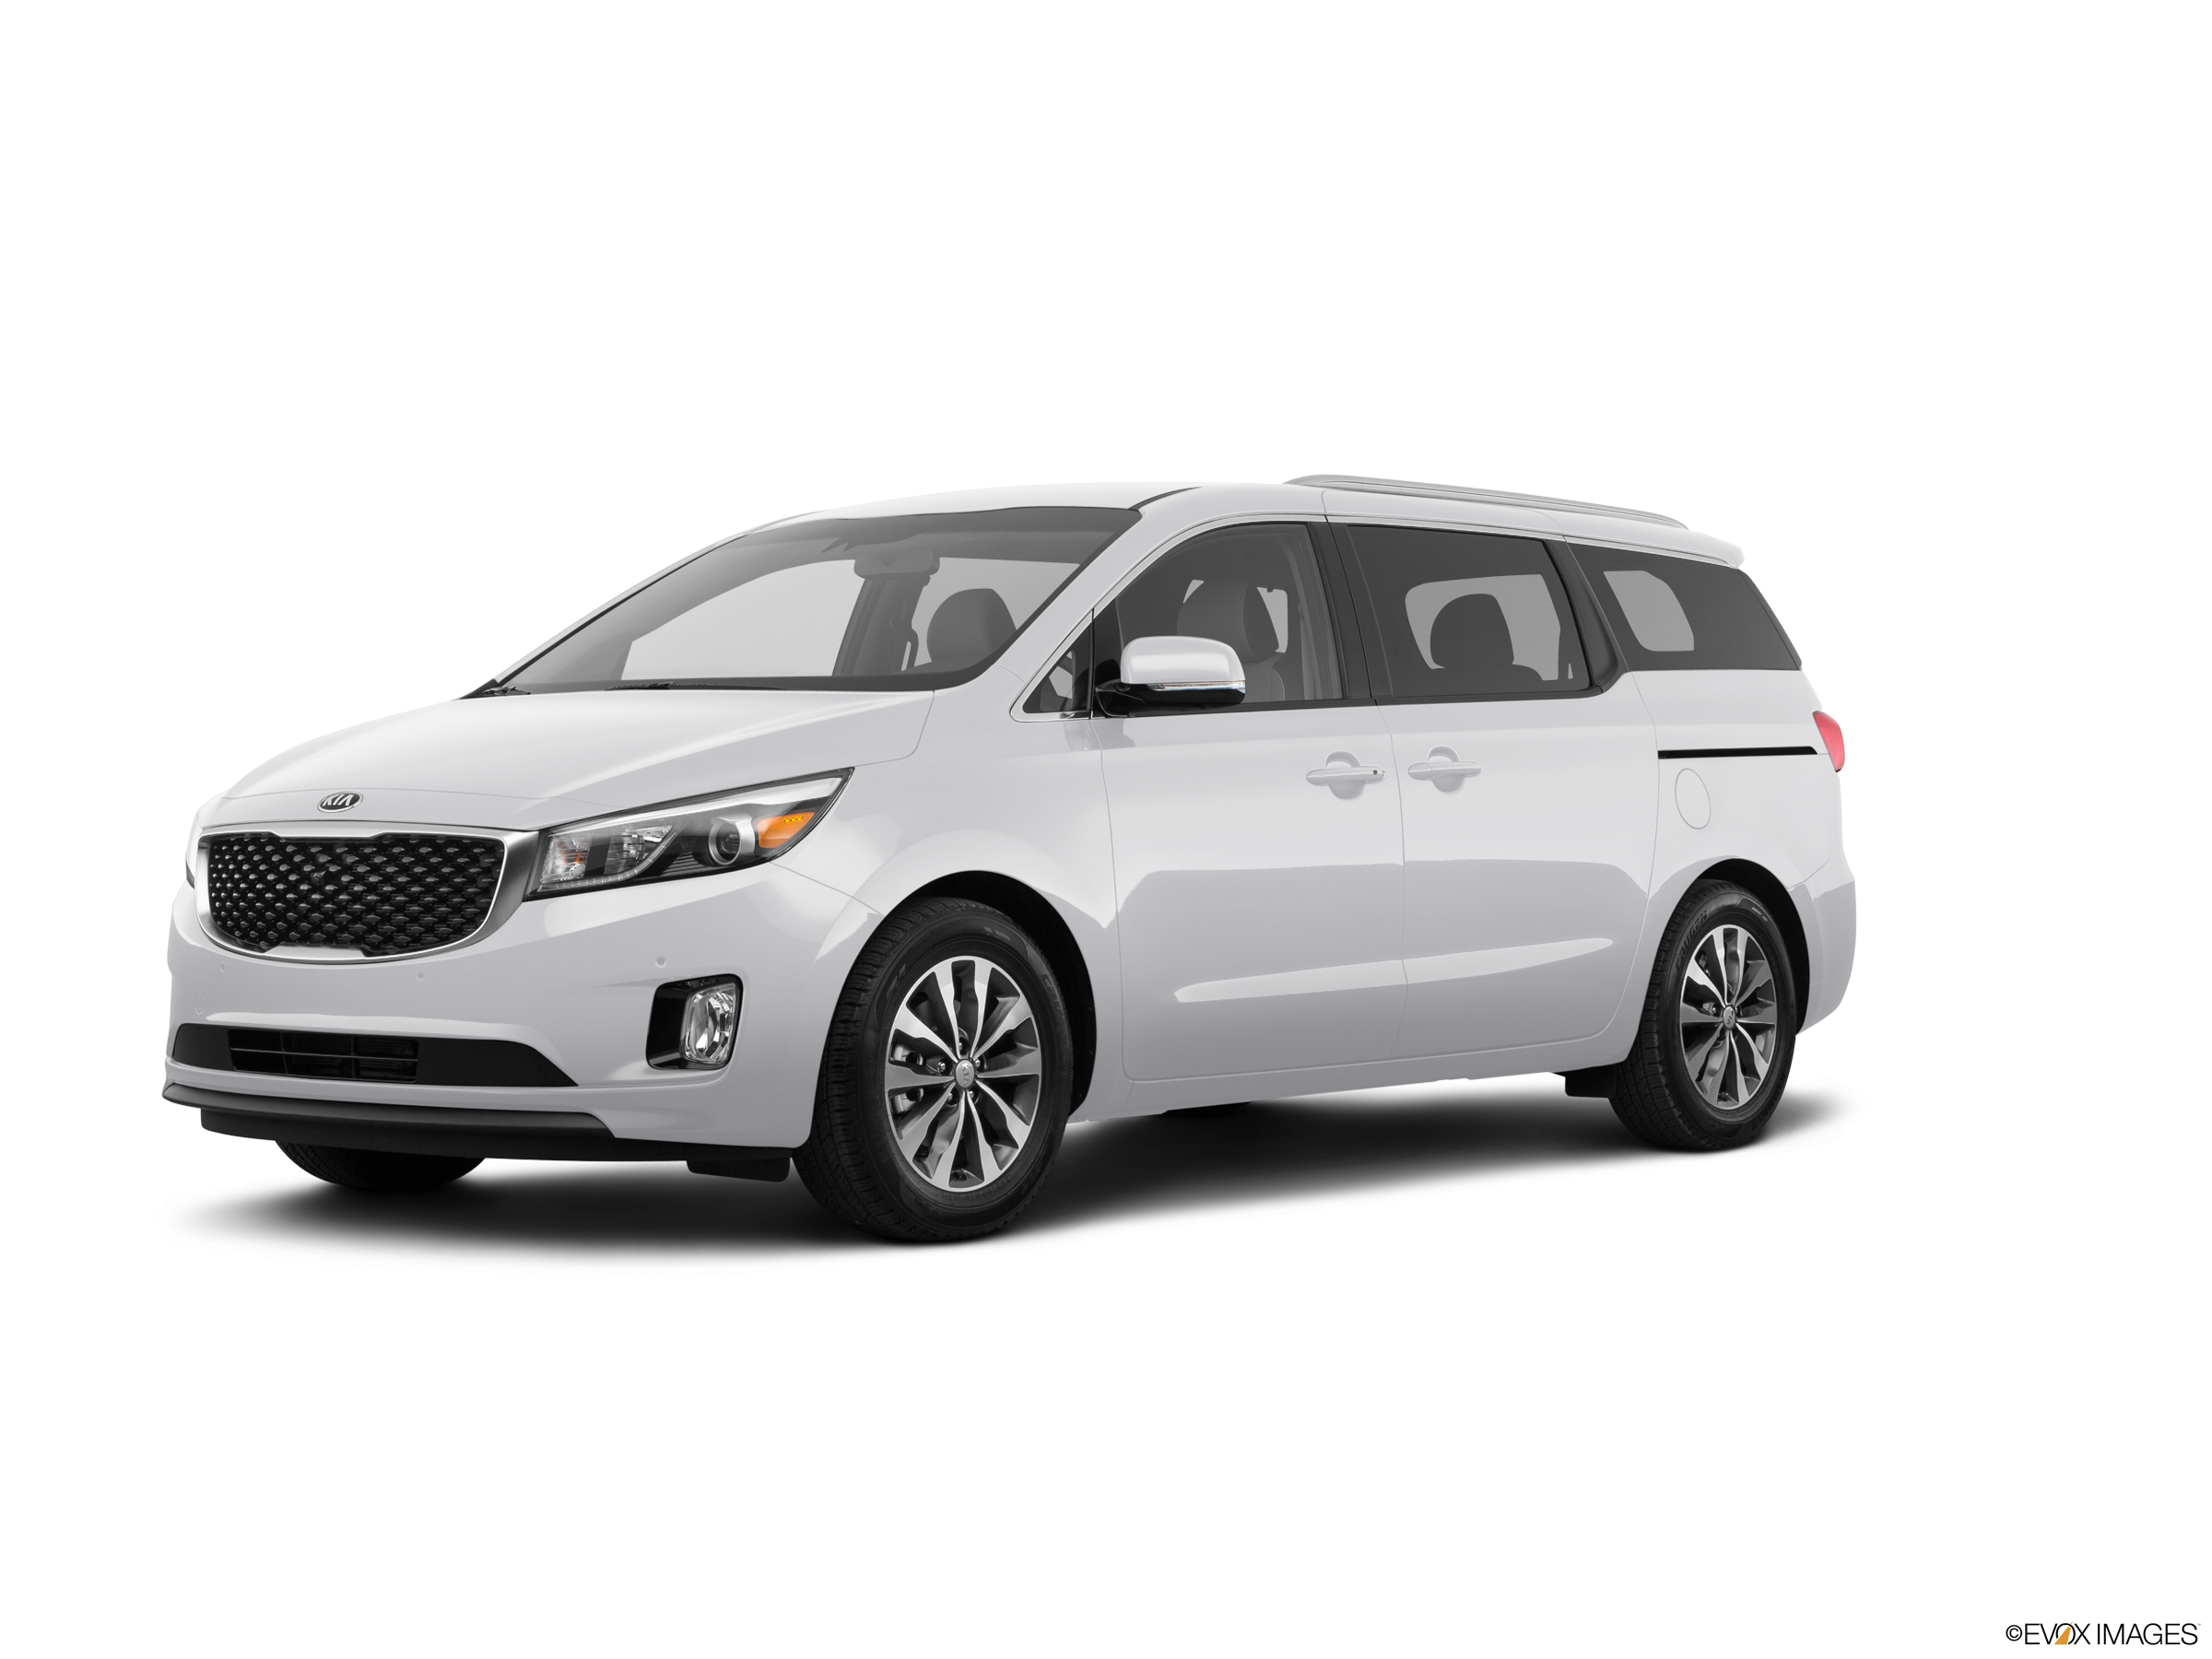 Top Expert Rated Van/Minivans of 2018 - 2018 Kia Sedona